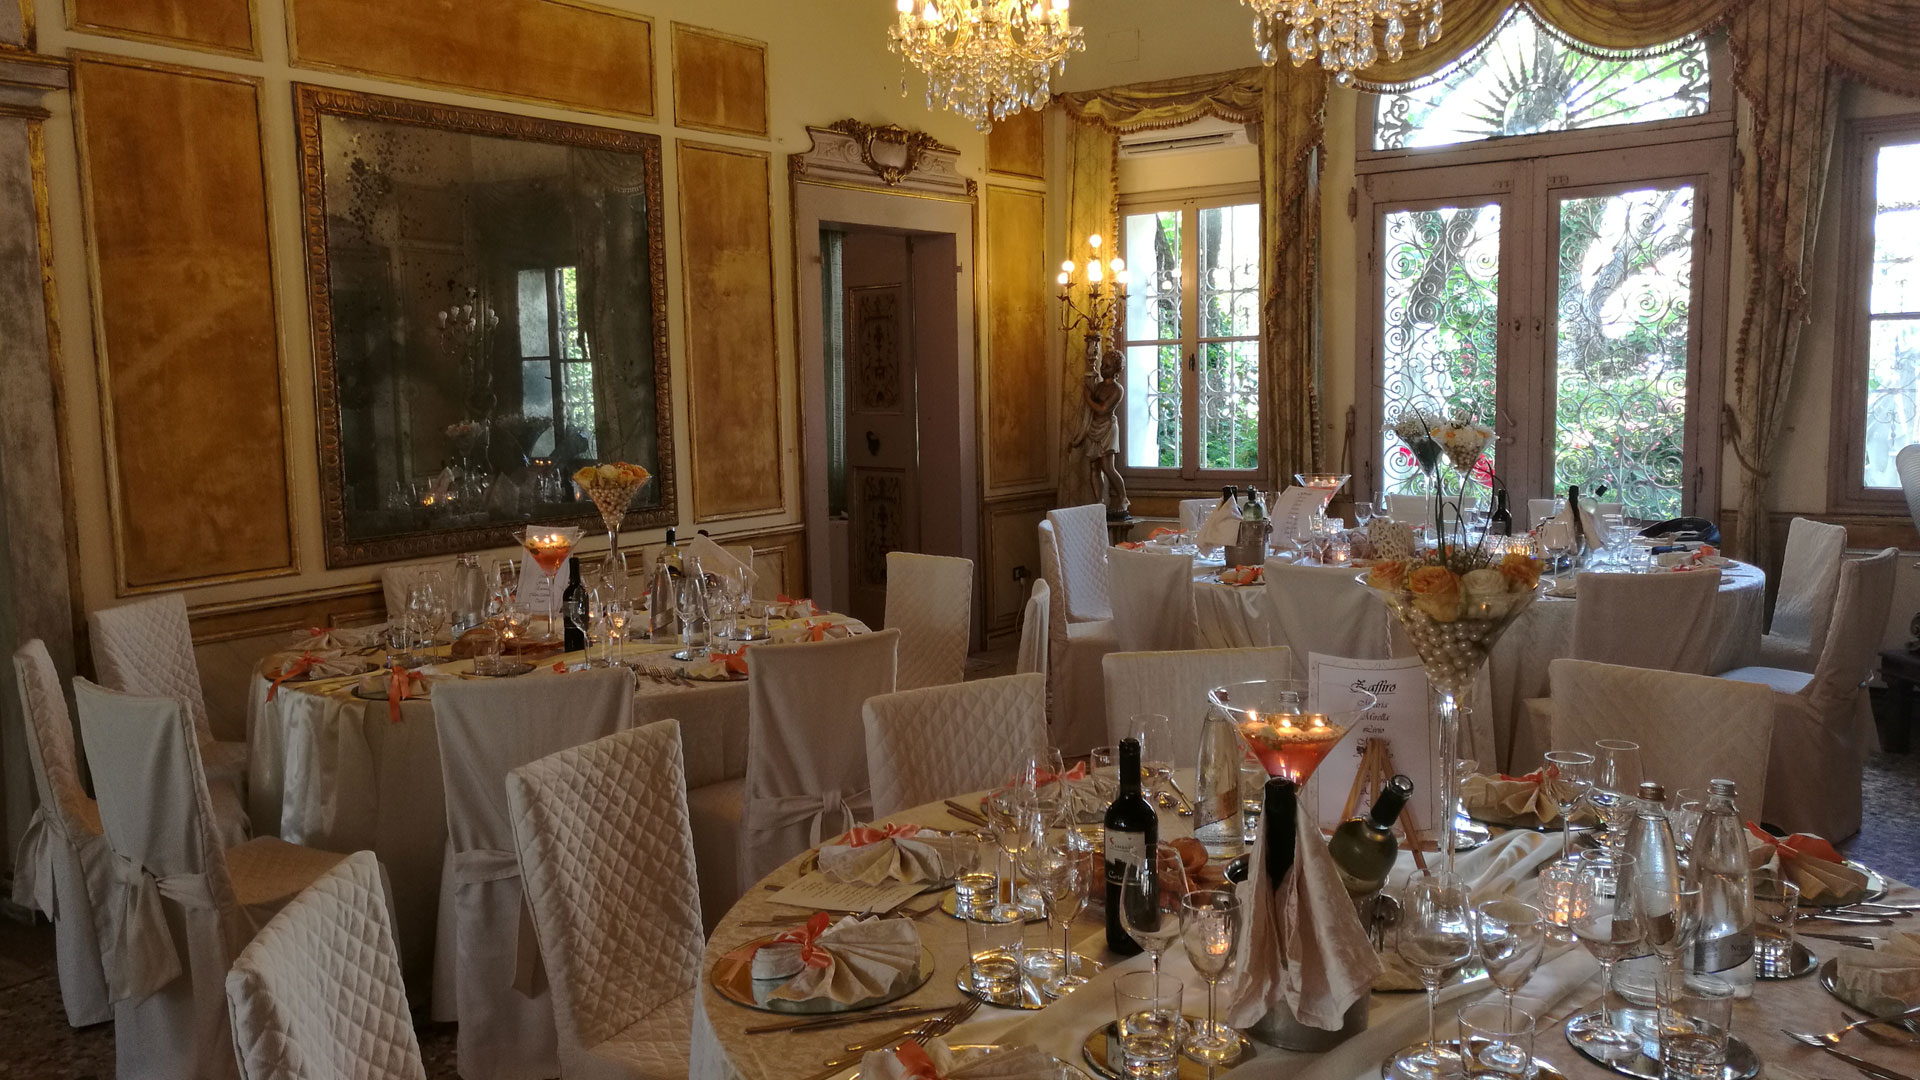 VILLE MATRIMONI PADOVA LOCATION BEAUTIFUL